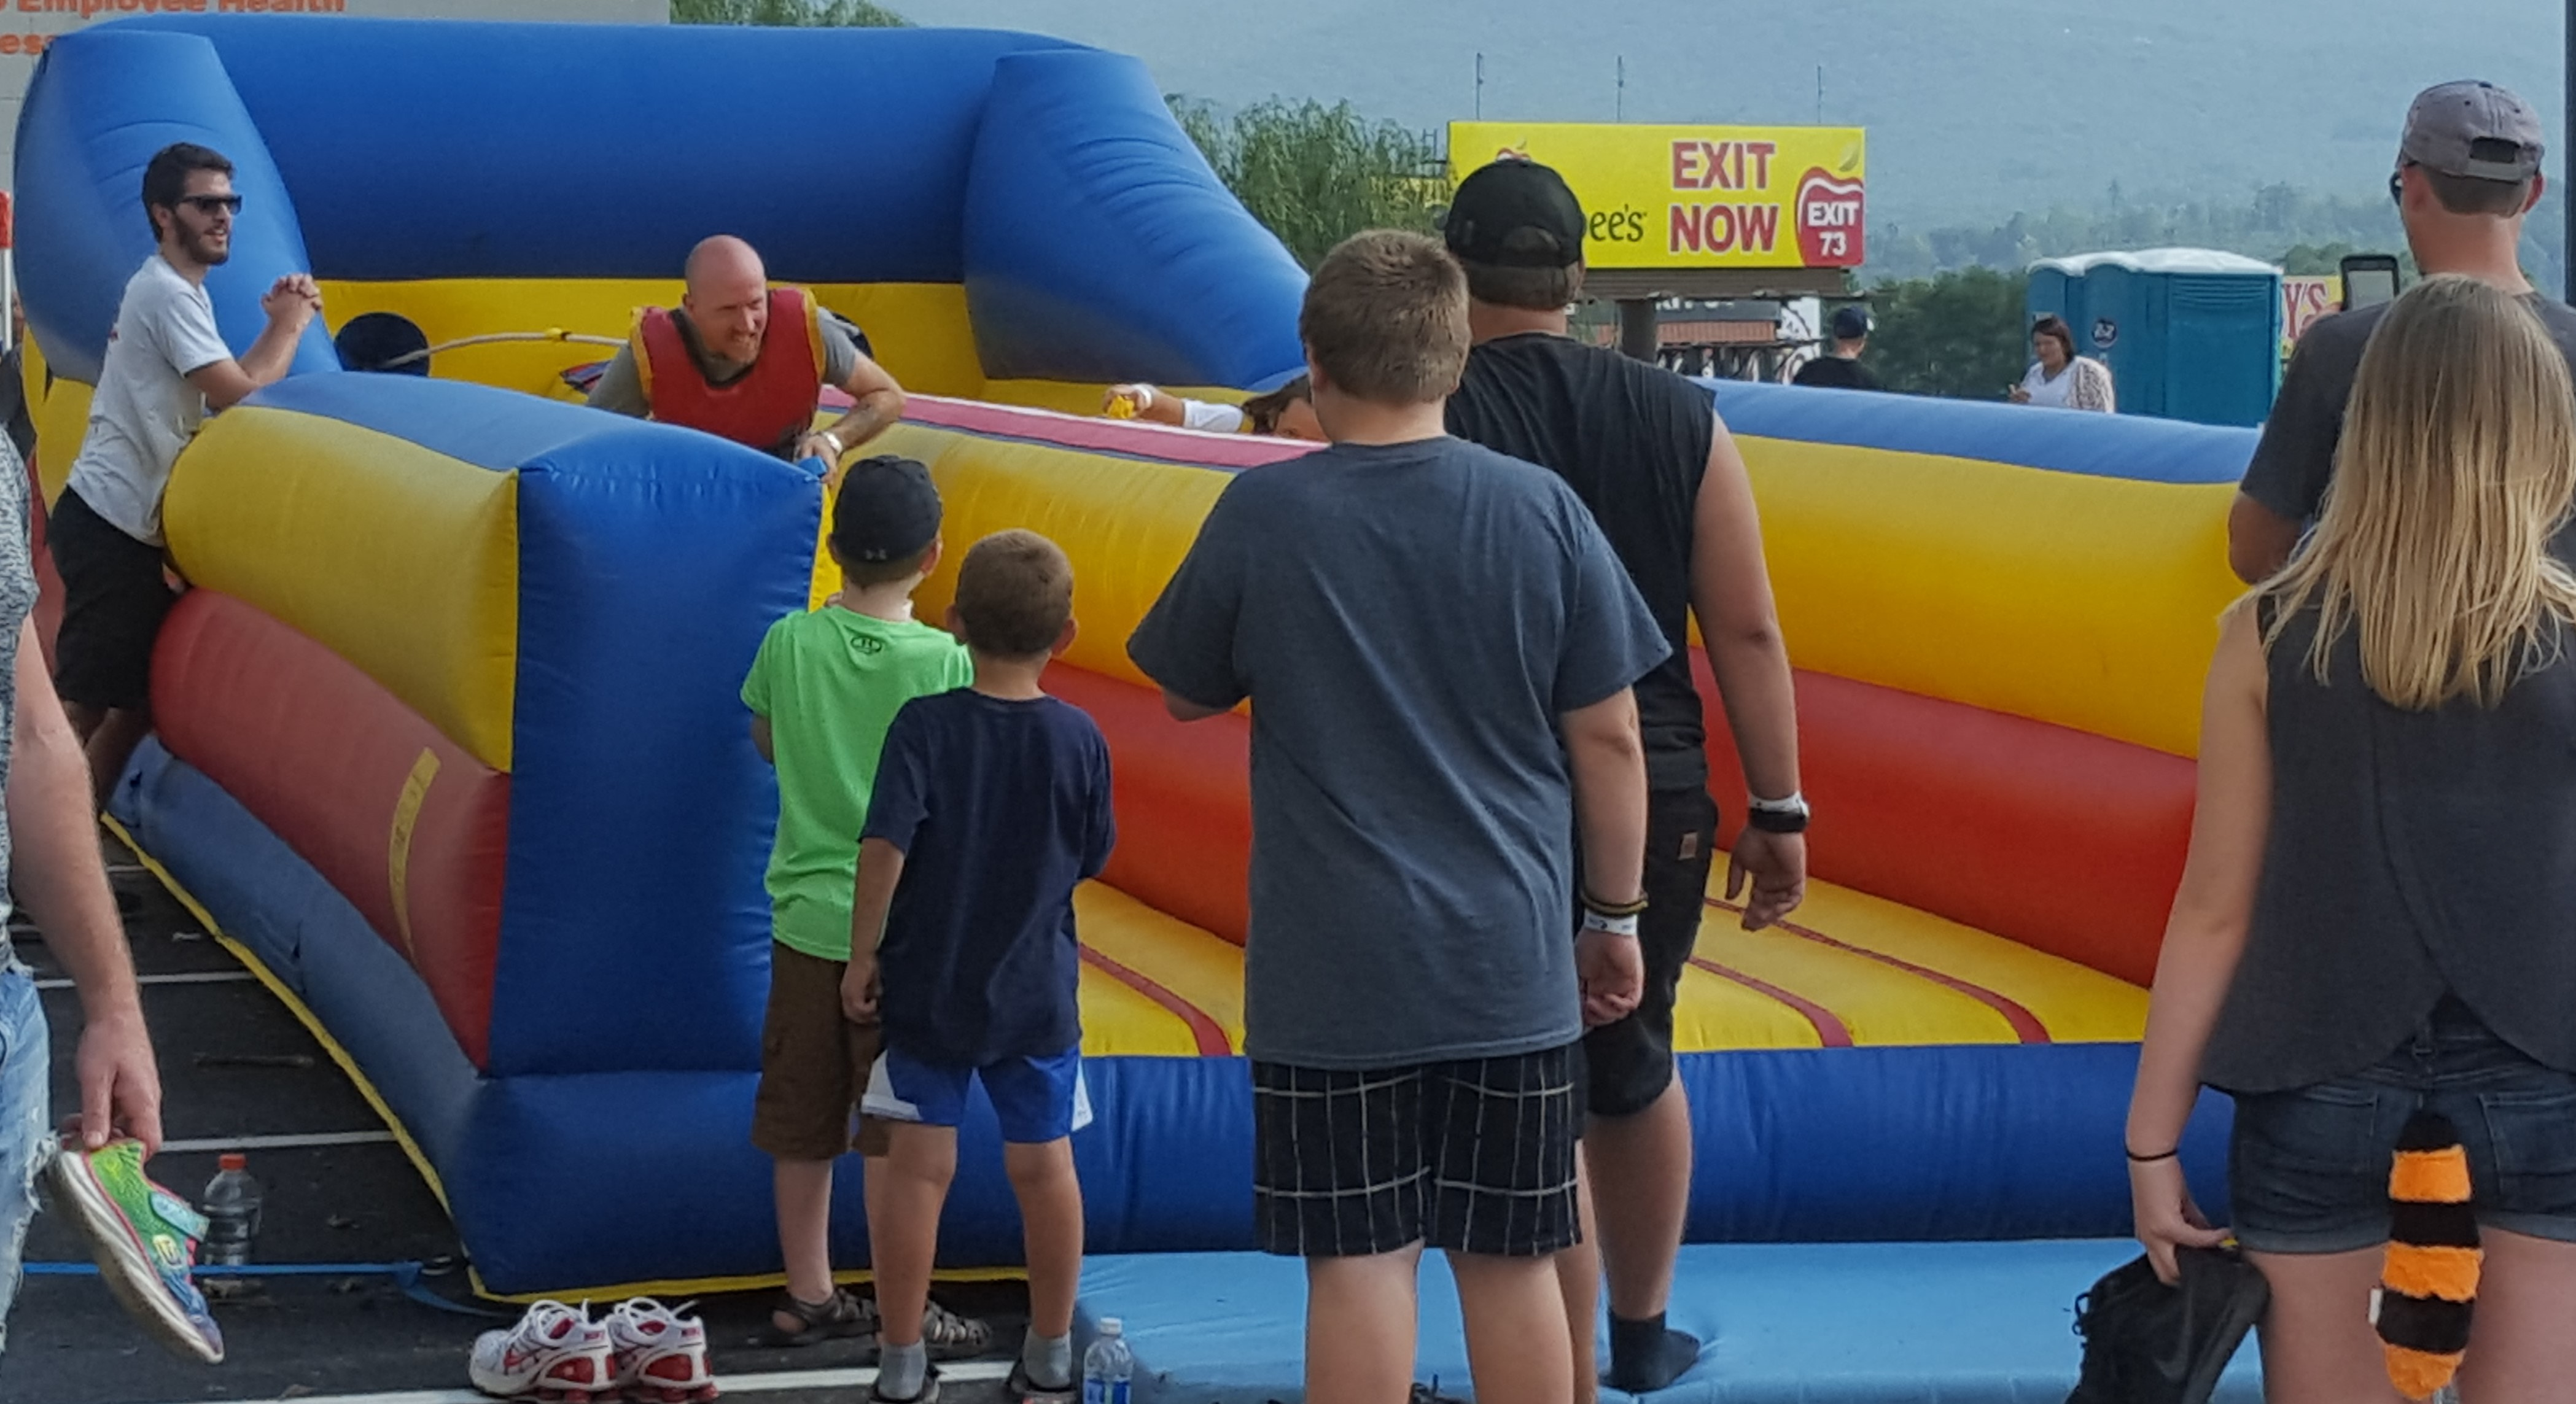 Two people race to see who can run out the farthest before being pulled back by the bungee cord. 35' l x 11' w x 8' h.